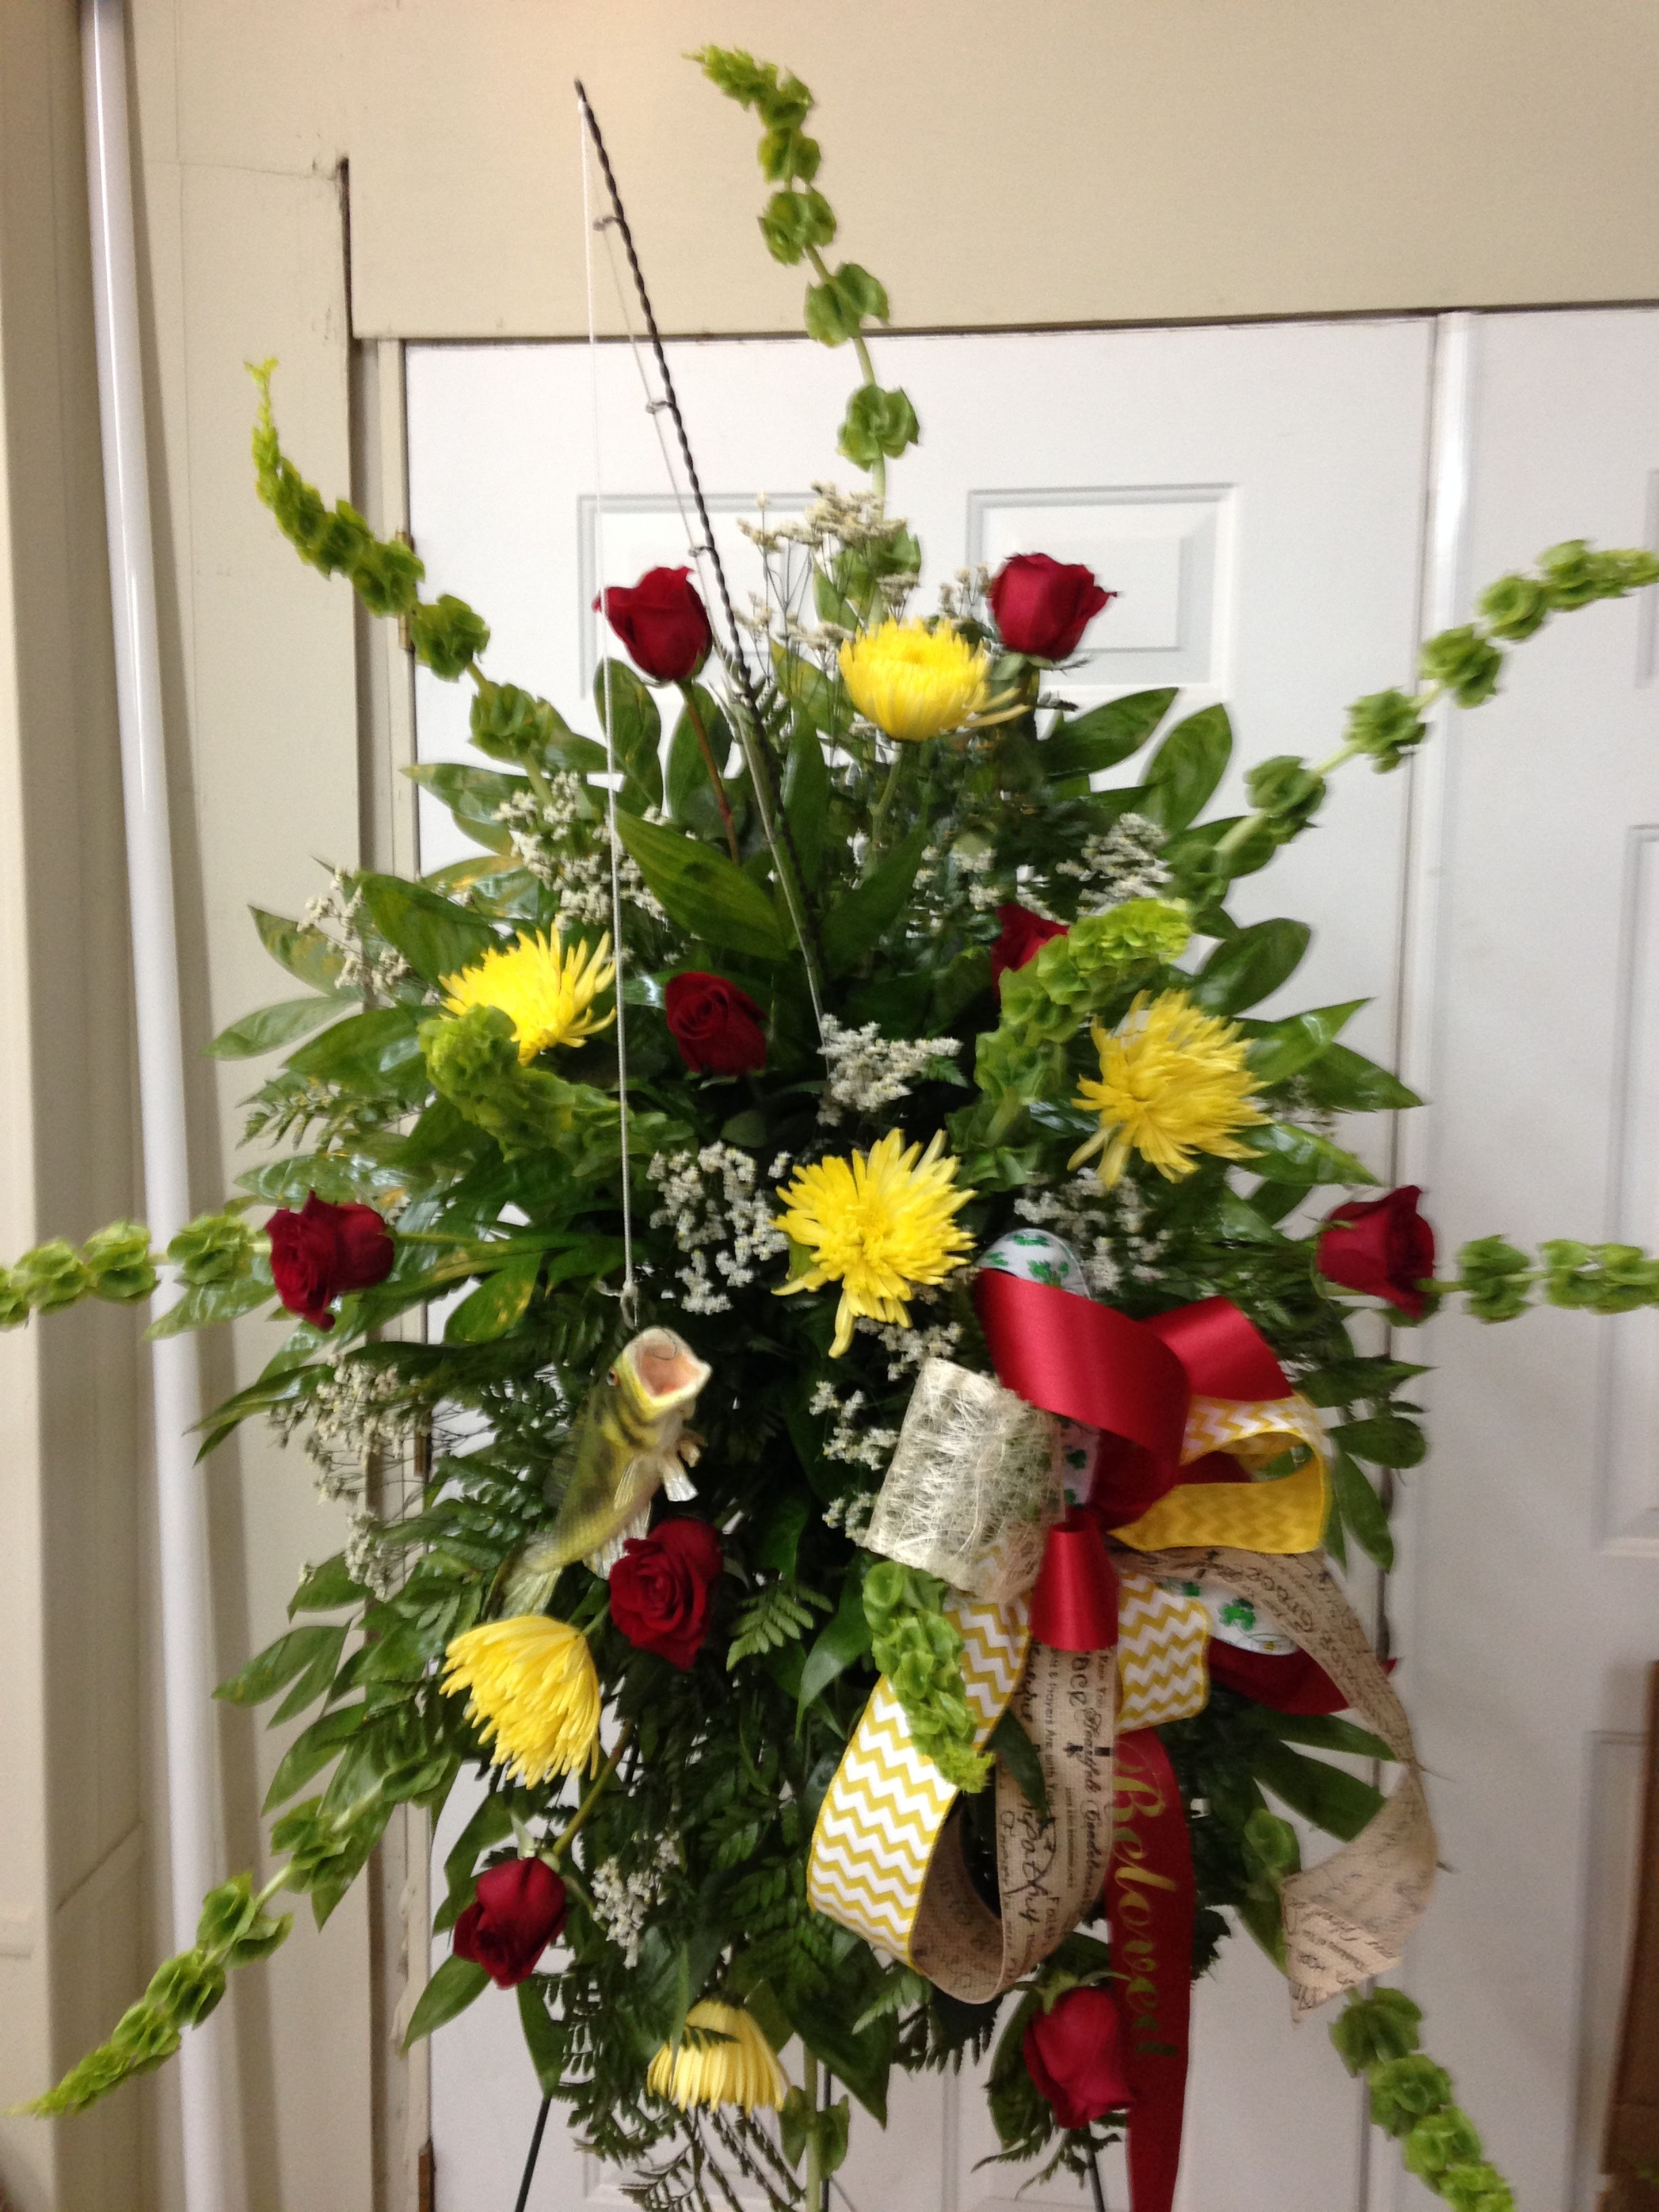 Fresh funeral spray using bells of ireland yellow fuji mums red fresh funeral spray using bells of ireland yellow fuji mums red roses white filler with multiple colored and prints bow also has fishing rod and a fish izmirmasajfo Gallery